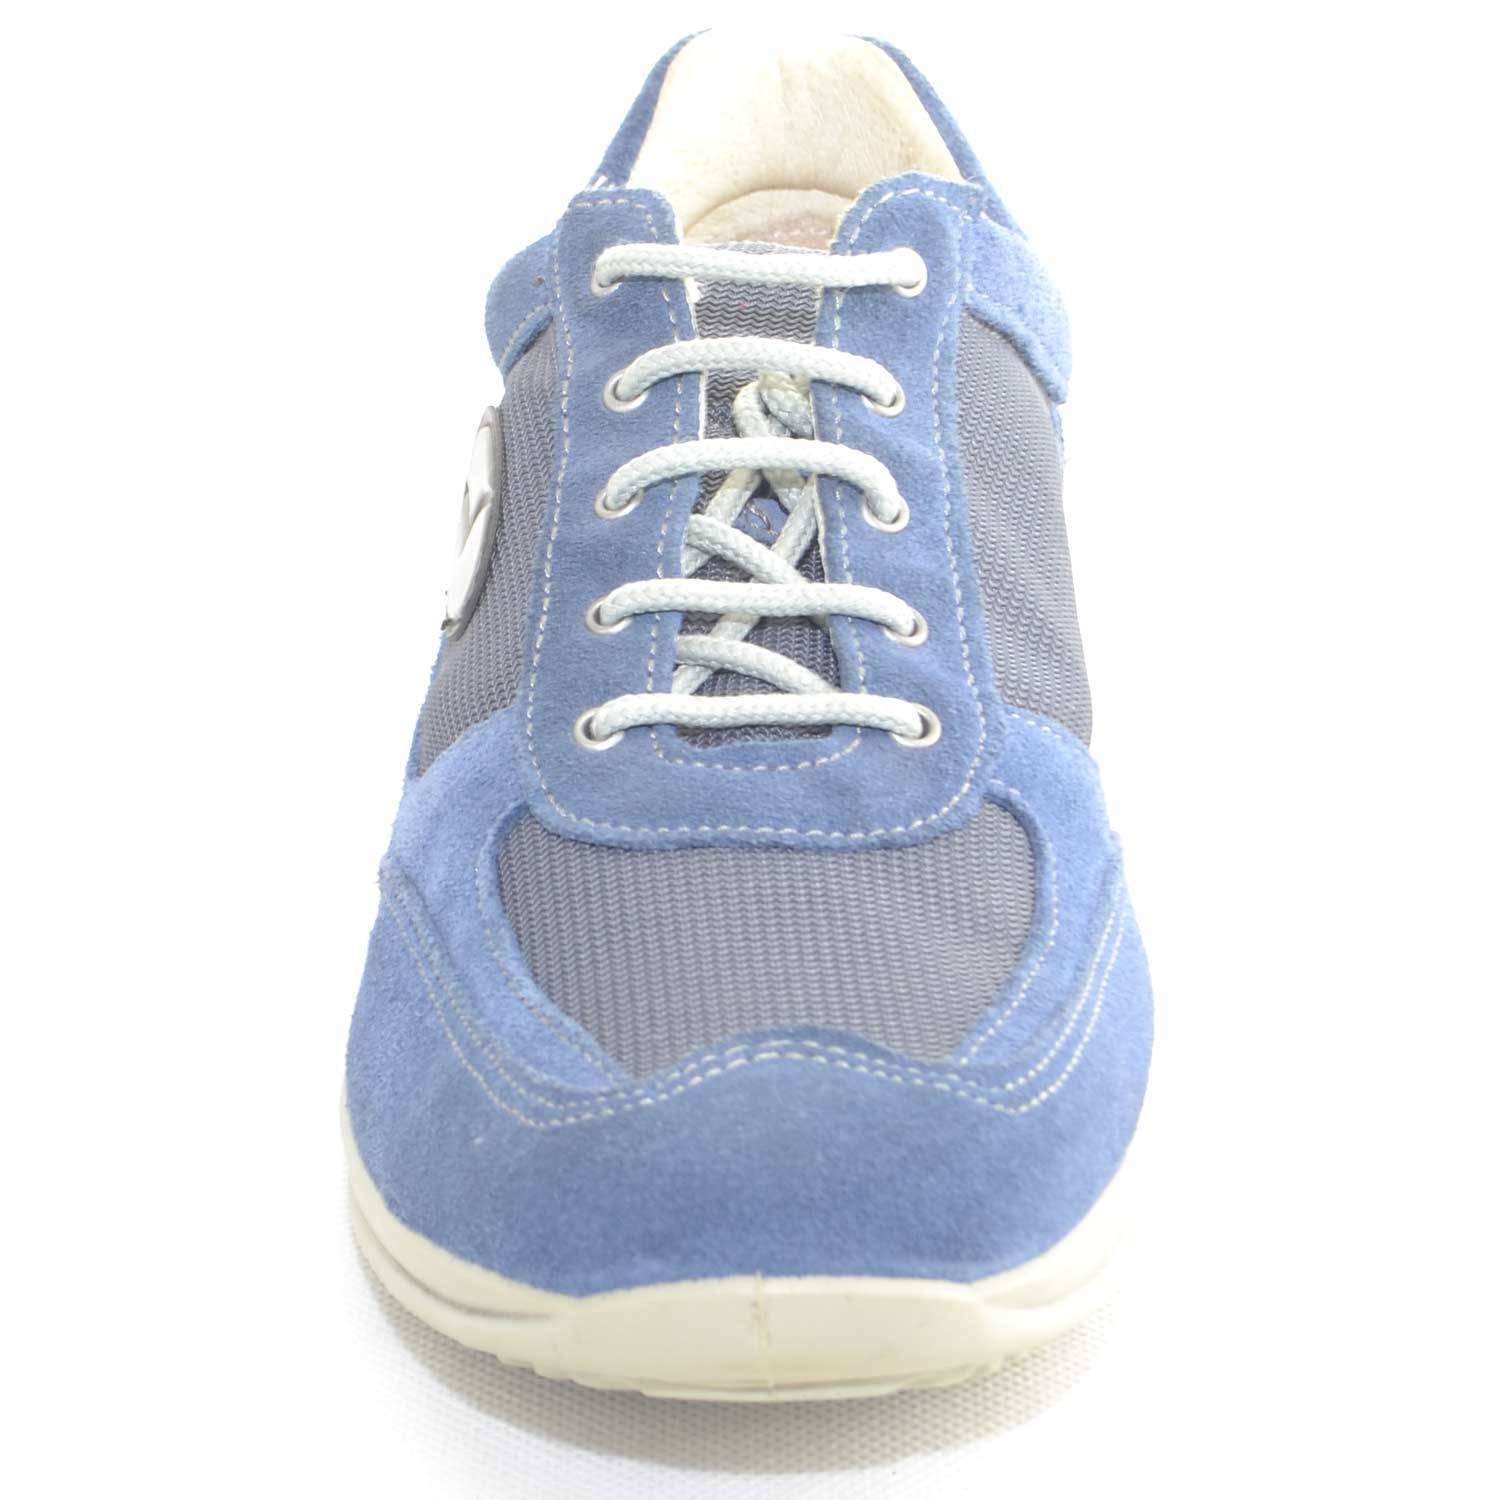 Light Man Shoes 8123 Italy Step Sportive Chiaro Made Uomo Sneakers Comfort Grisport  Blu In Scarpe wUqXRAp 6cab52e77ac